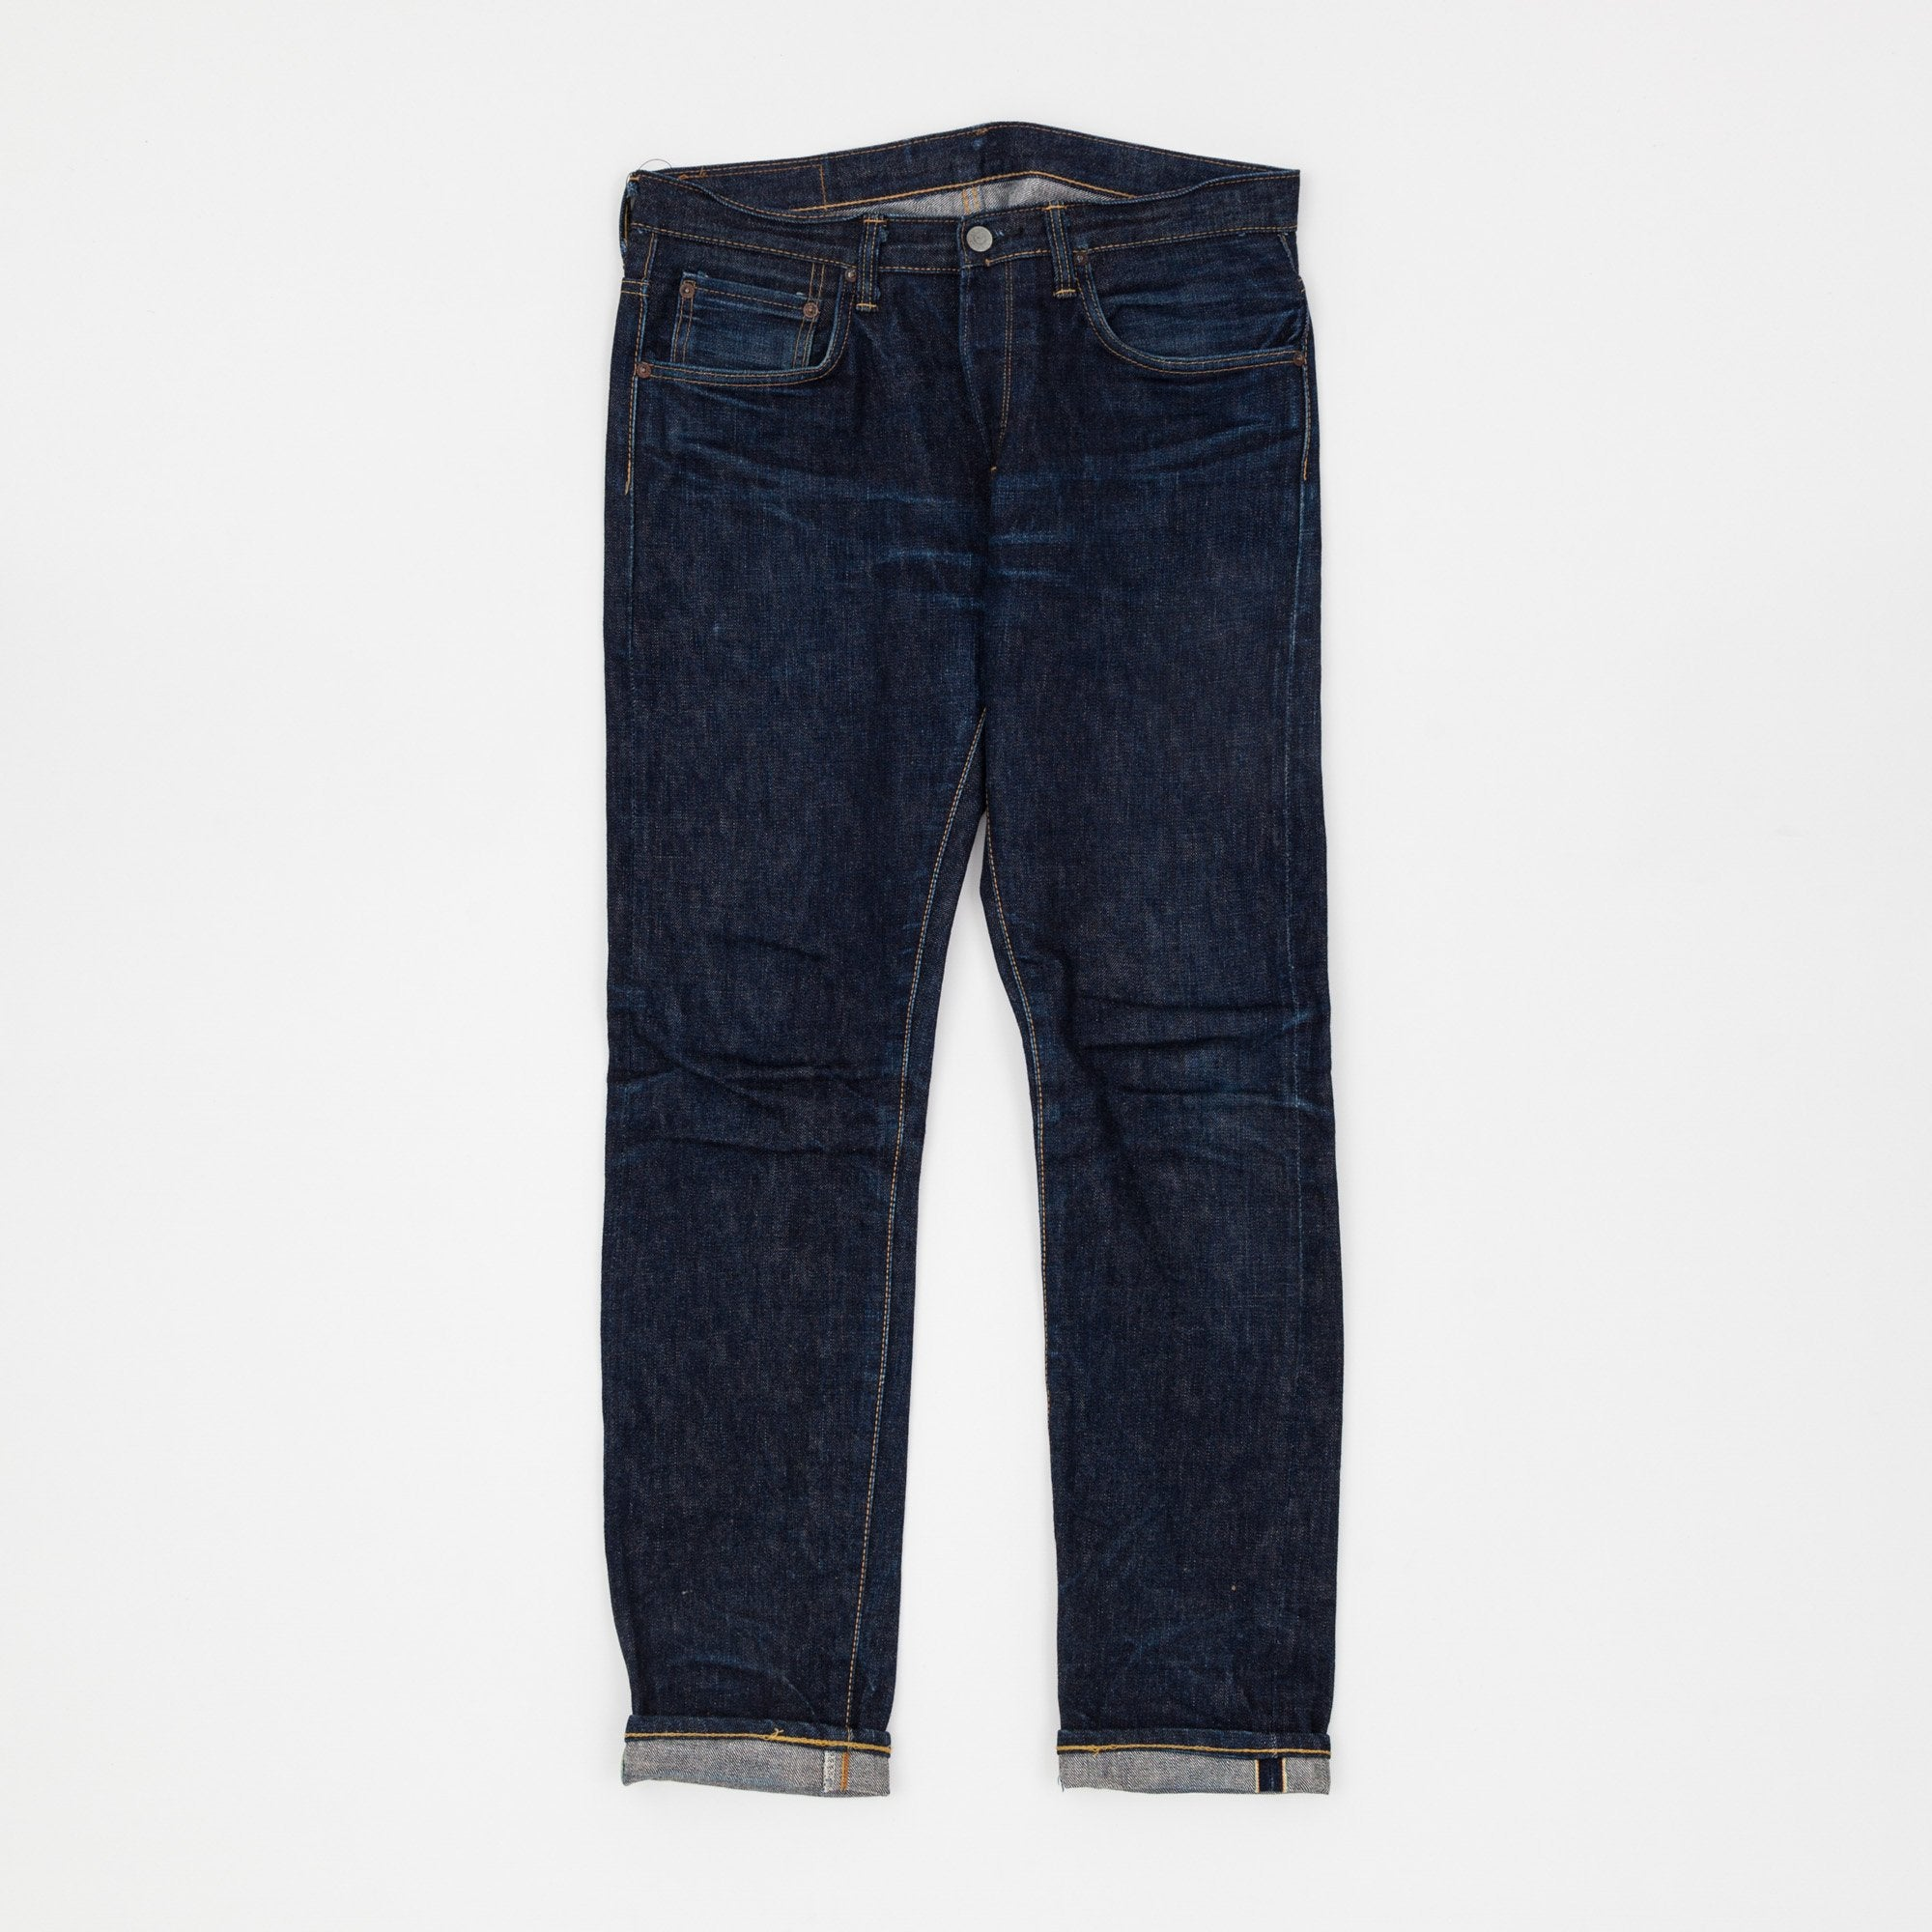 Edwin ED-55 Rainbow Selvedge Denim Jeans